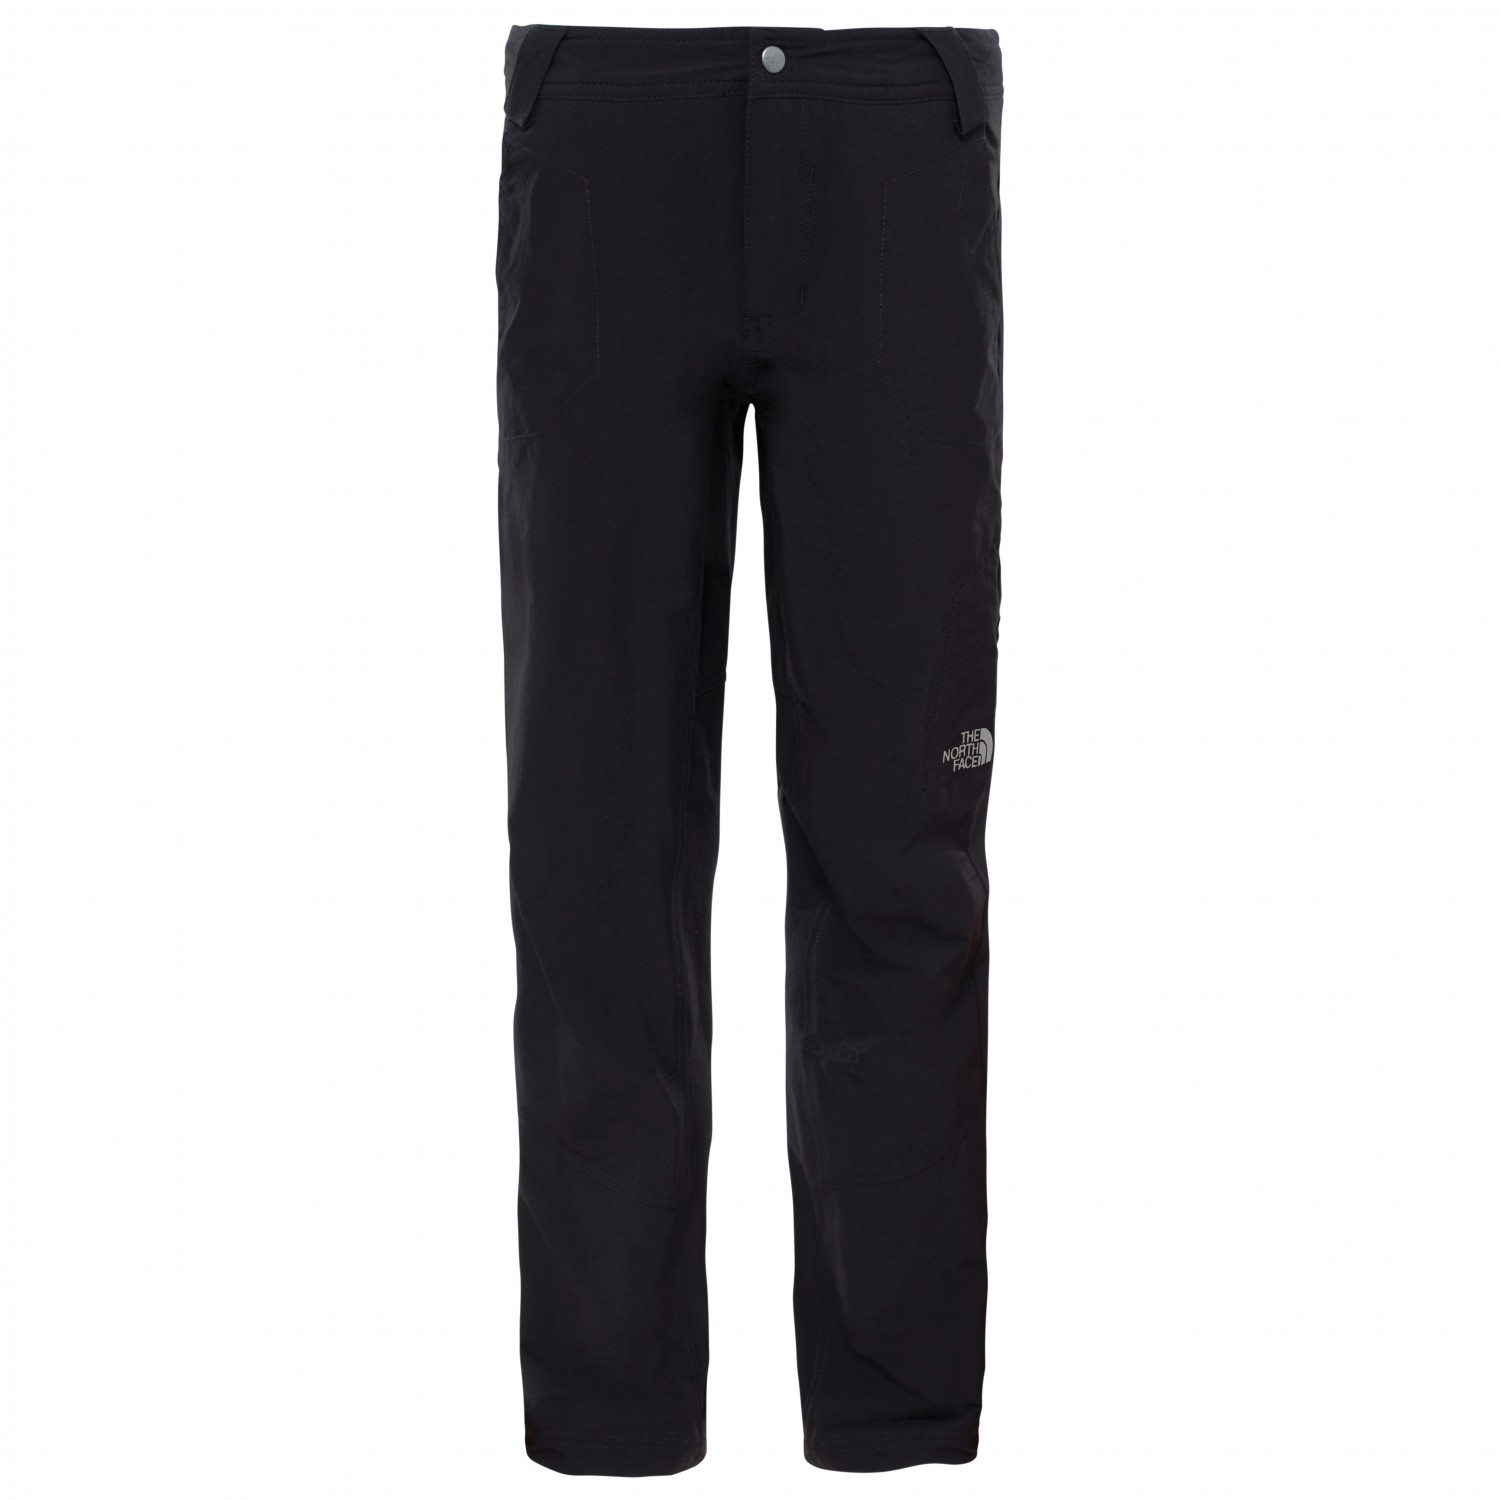 db28c9ee The North Face Exploration Pant - Walking Trousers Boys | Buy online ...